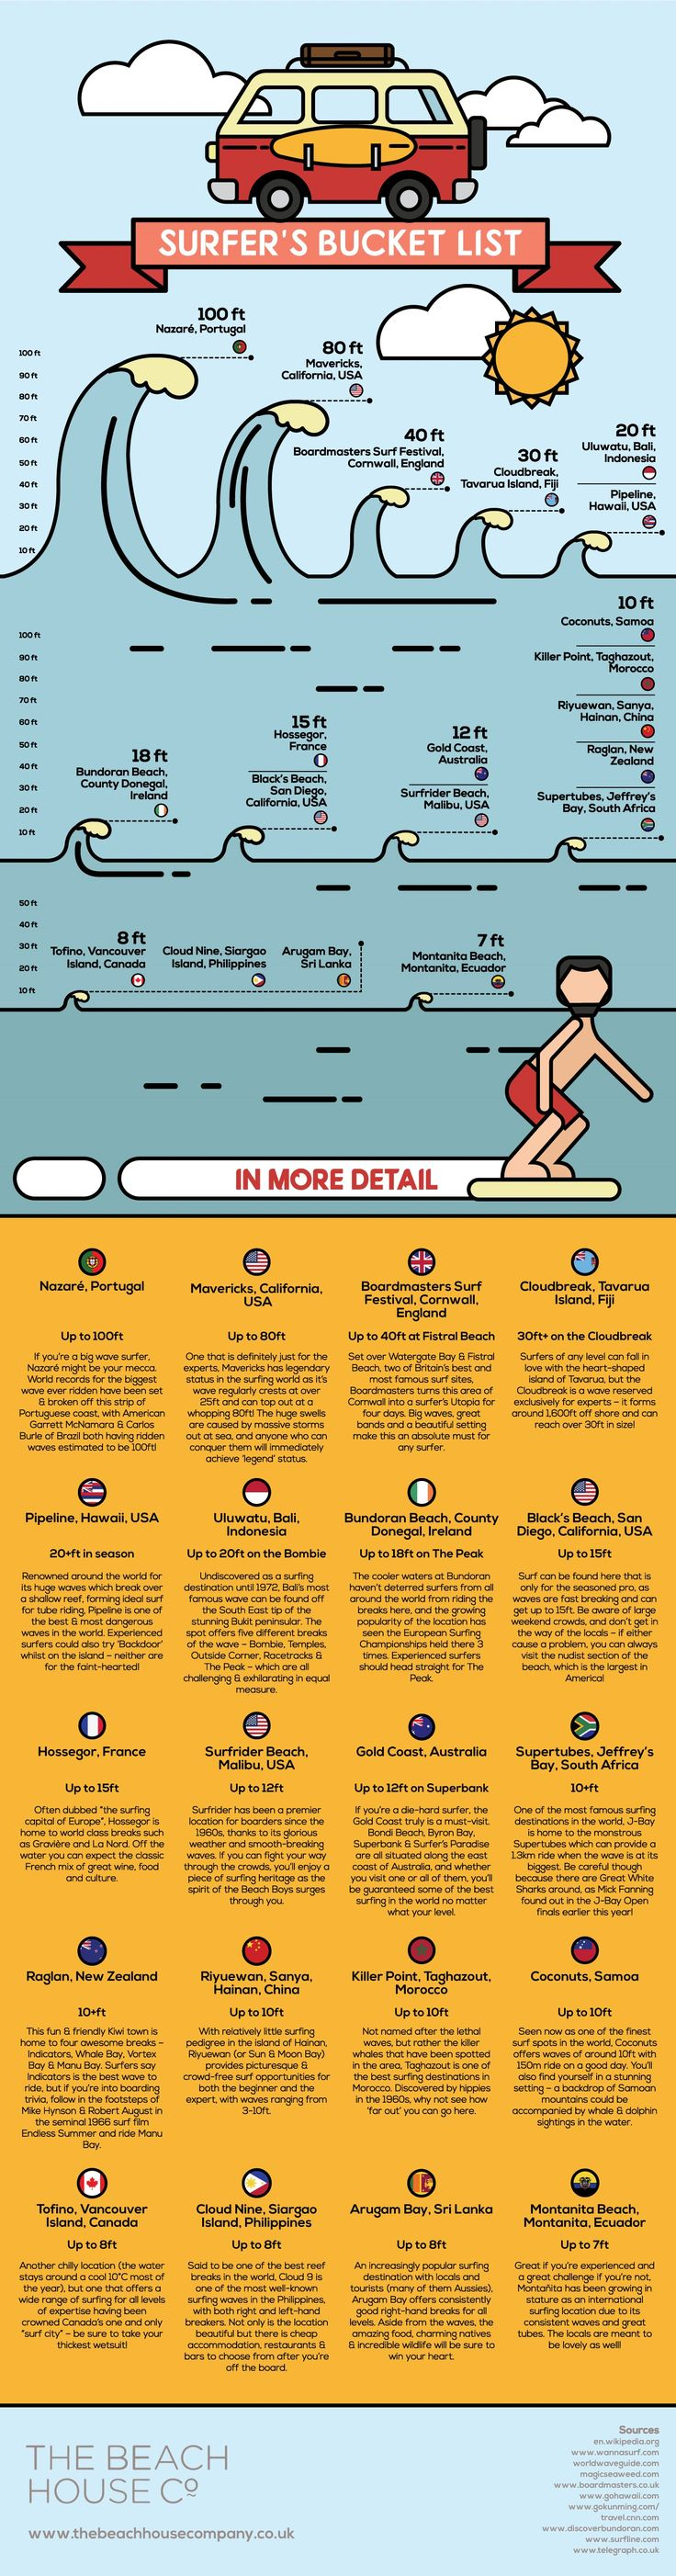 The Surfer's Bucket List